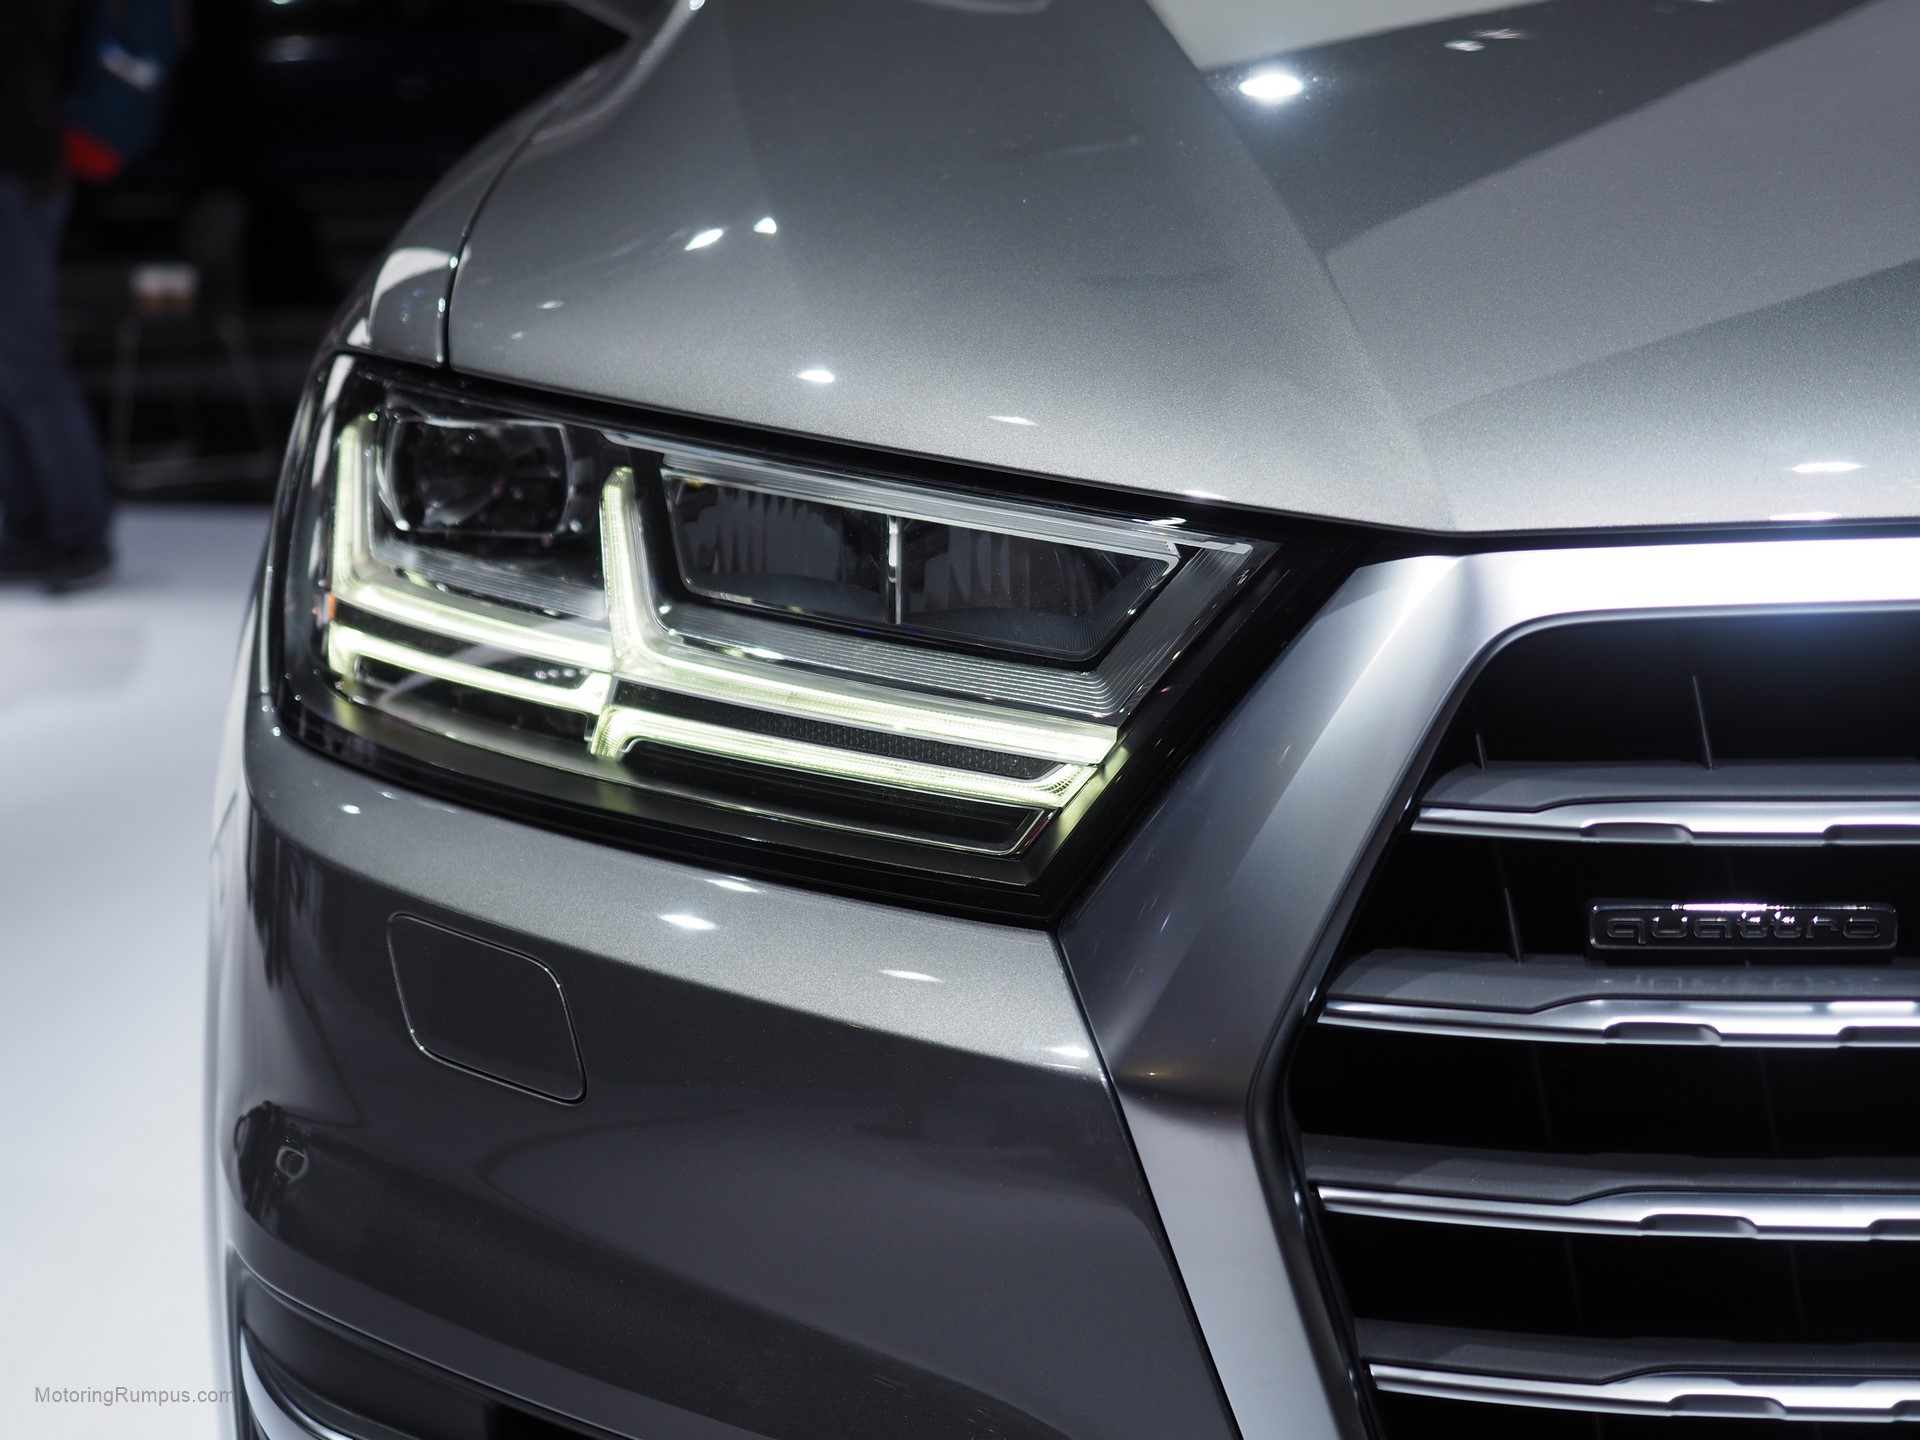 2016 Naias Audi Q7 Headlight Motoring Rumpus